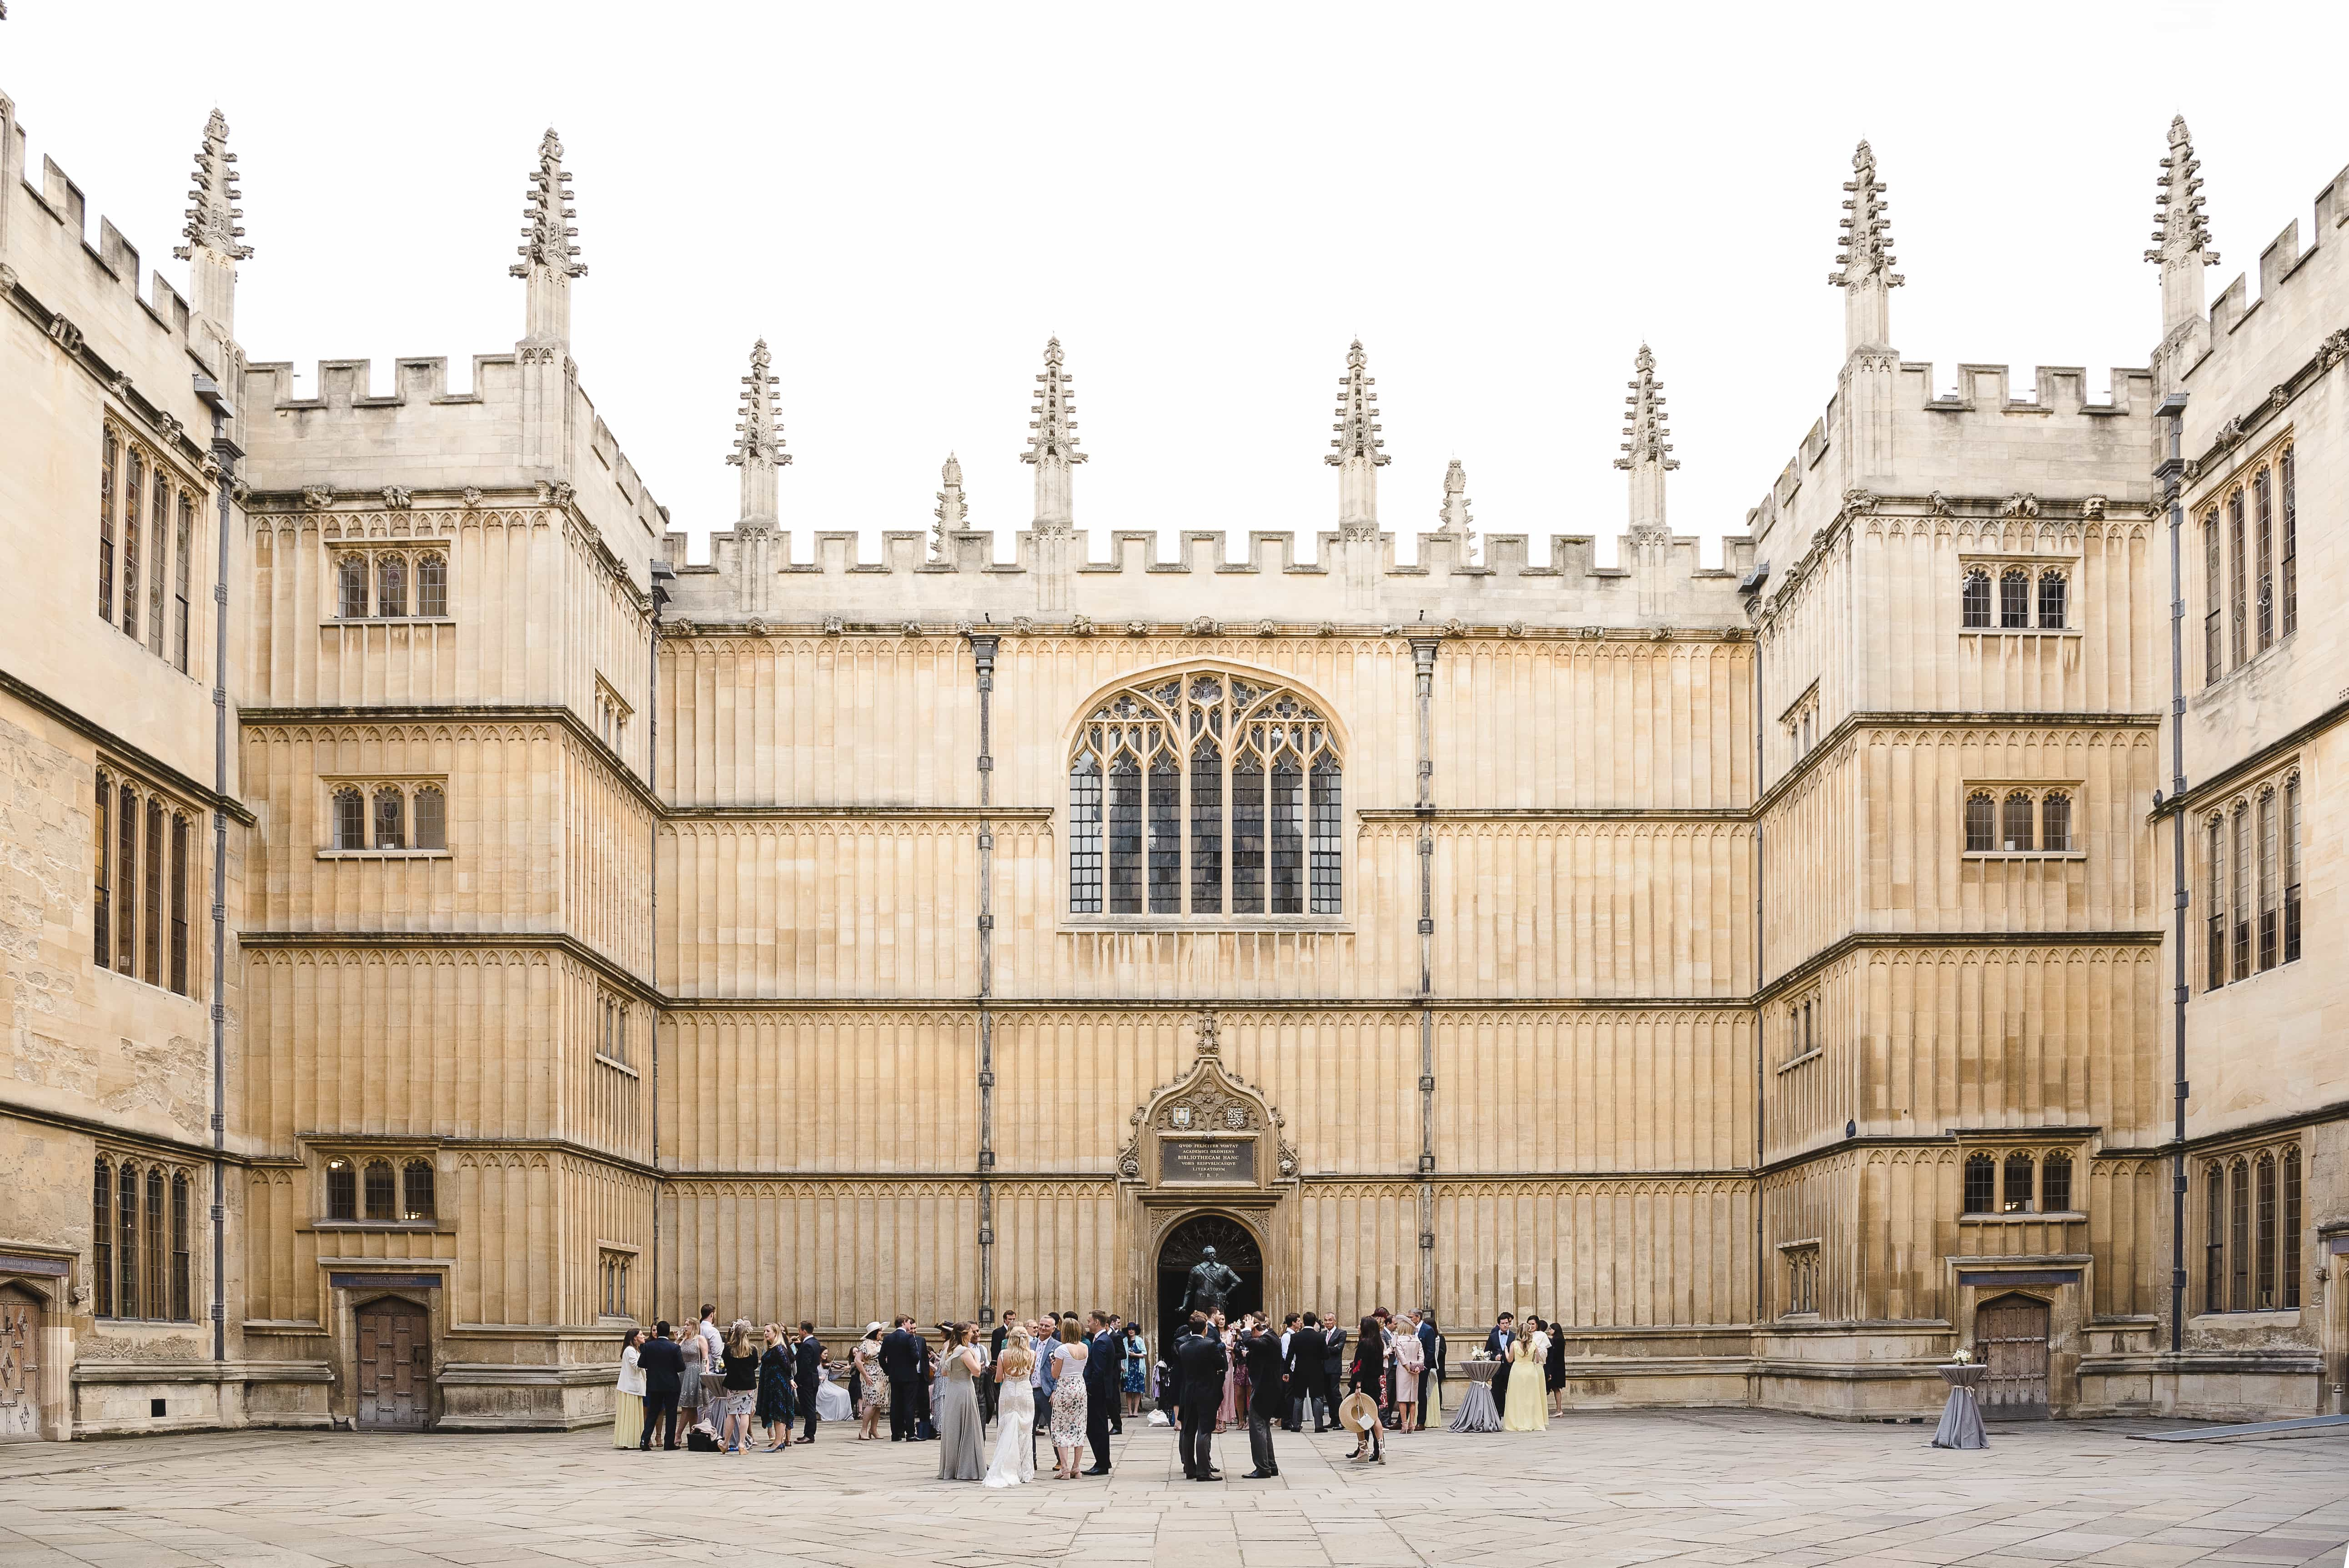 Old Schools Quad, Bodleian Libraries